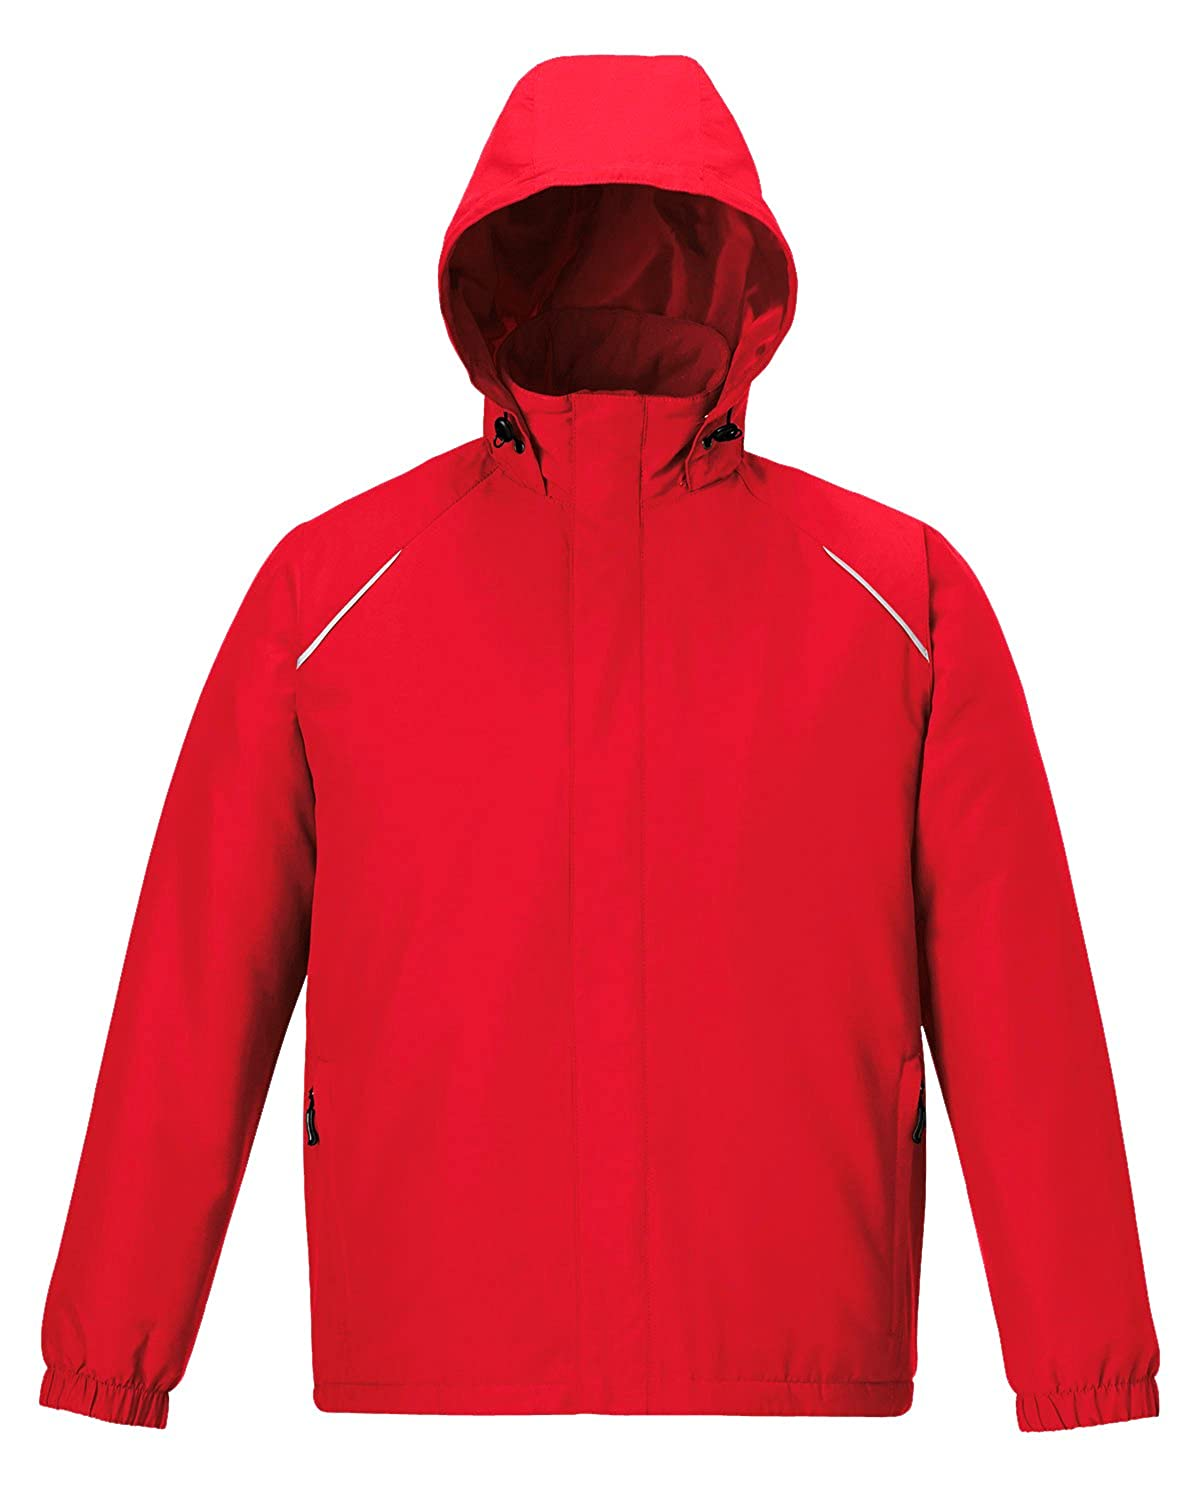 Core 365 Men's North End Brisk Insulated Jacket